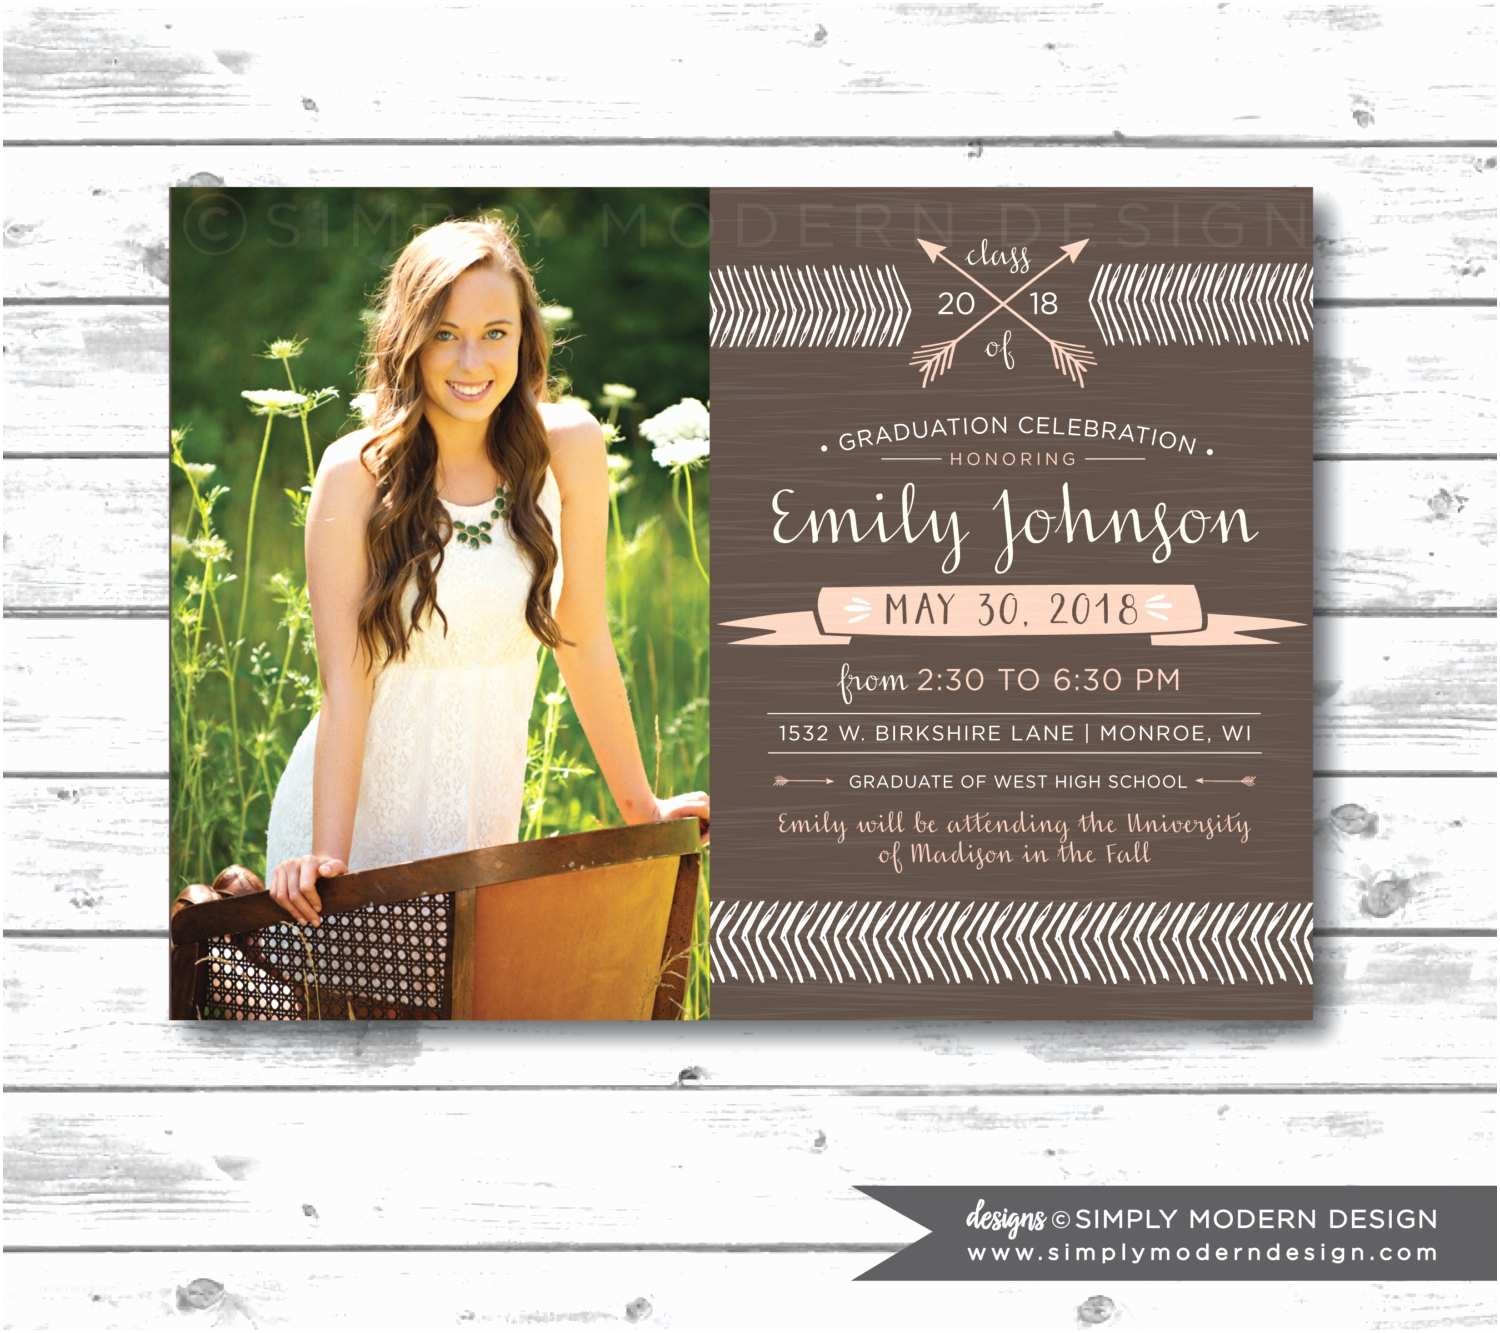 Graduation Party Invitations 2018 2018 Graduation Invitations 2018 Graduation Invitations